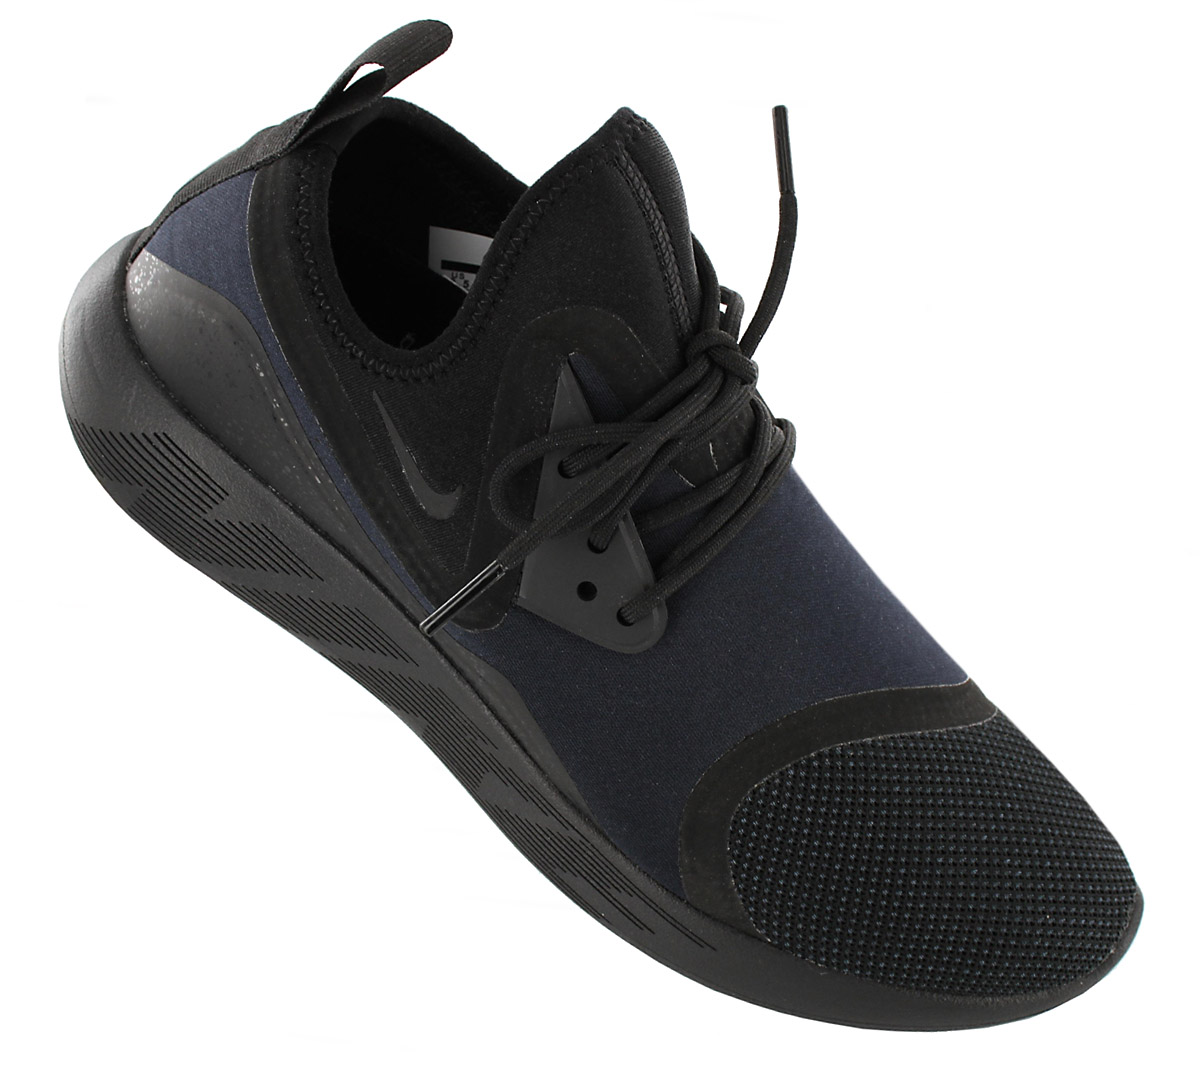 Nike Lunarcharge Essential Men s Sneakers Shoes Black Trainers ... 1a1742ce9